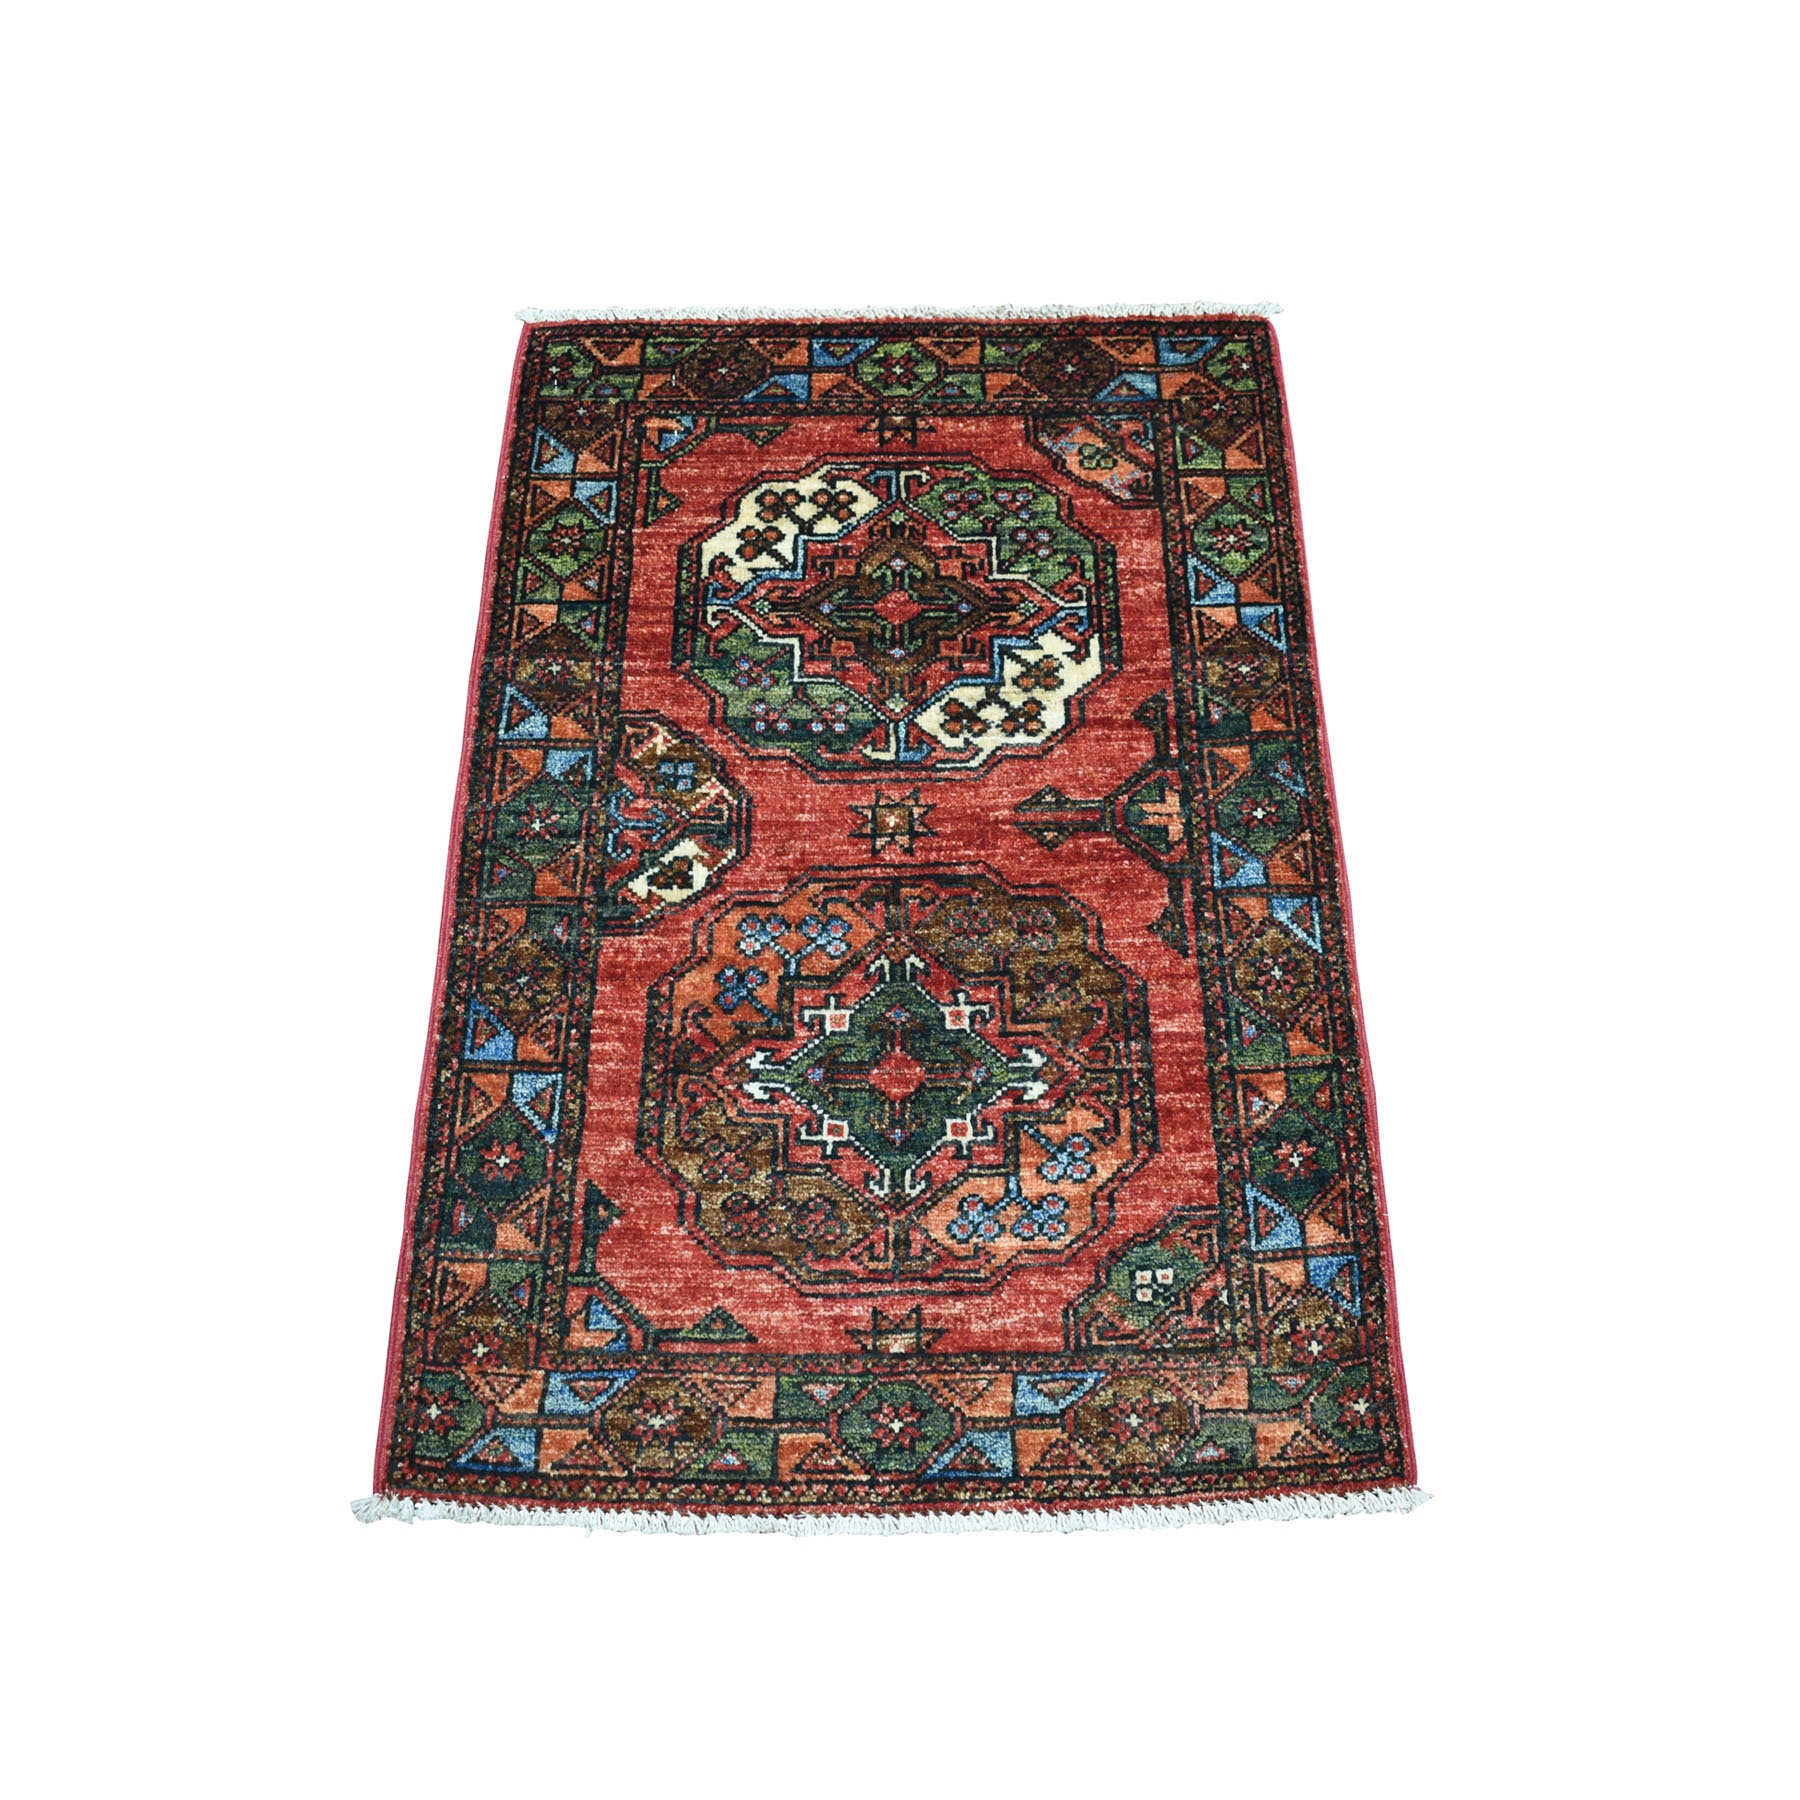 "2'x2'10"" Red Elephant Feet Afghan Ersari Hand Knotted Pure Wool Oriental Rug"